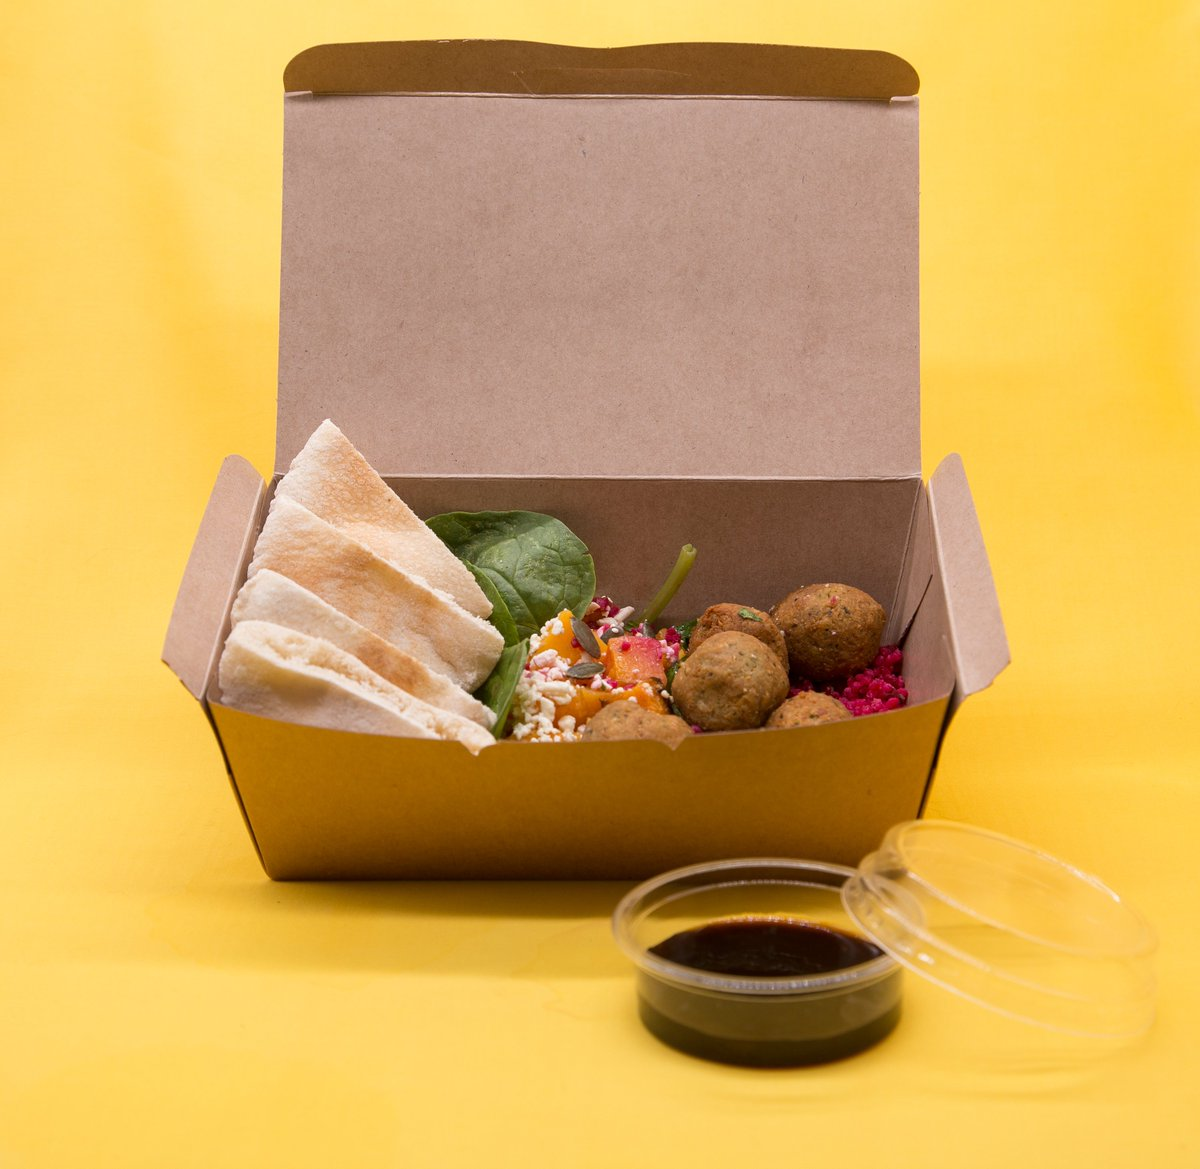 Everyone is loving the new constructed deli boxes! It saves time and the planet https://greenhome.co.za/kraft/  #Green #eco #ecofriendly #ecopackaging #Protecttheplanet #biodegradable #compostable #greenliving #Bagasse #greenfoodpackagingpic.twitter.com/63BQ1VXc4w